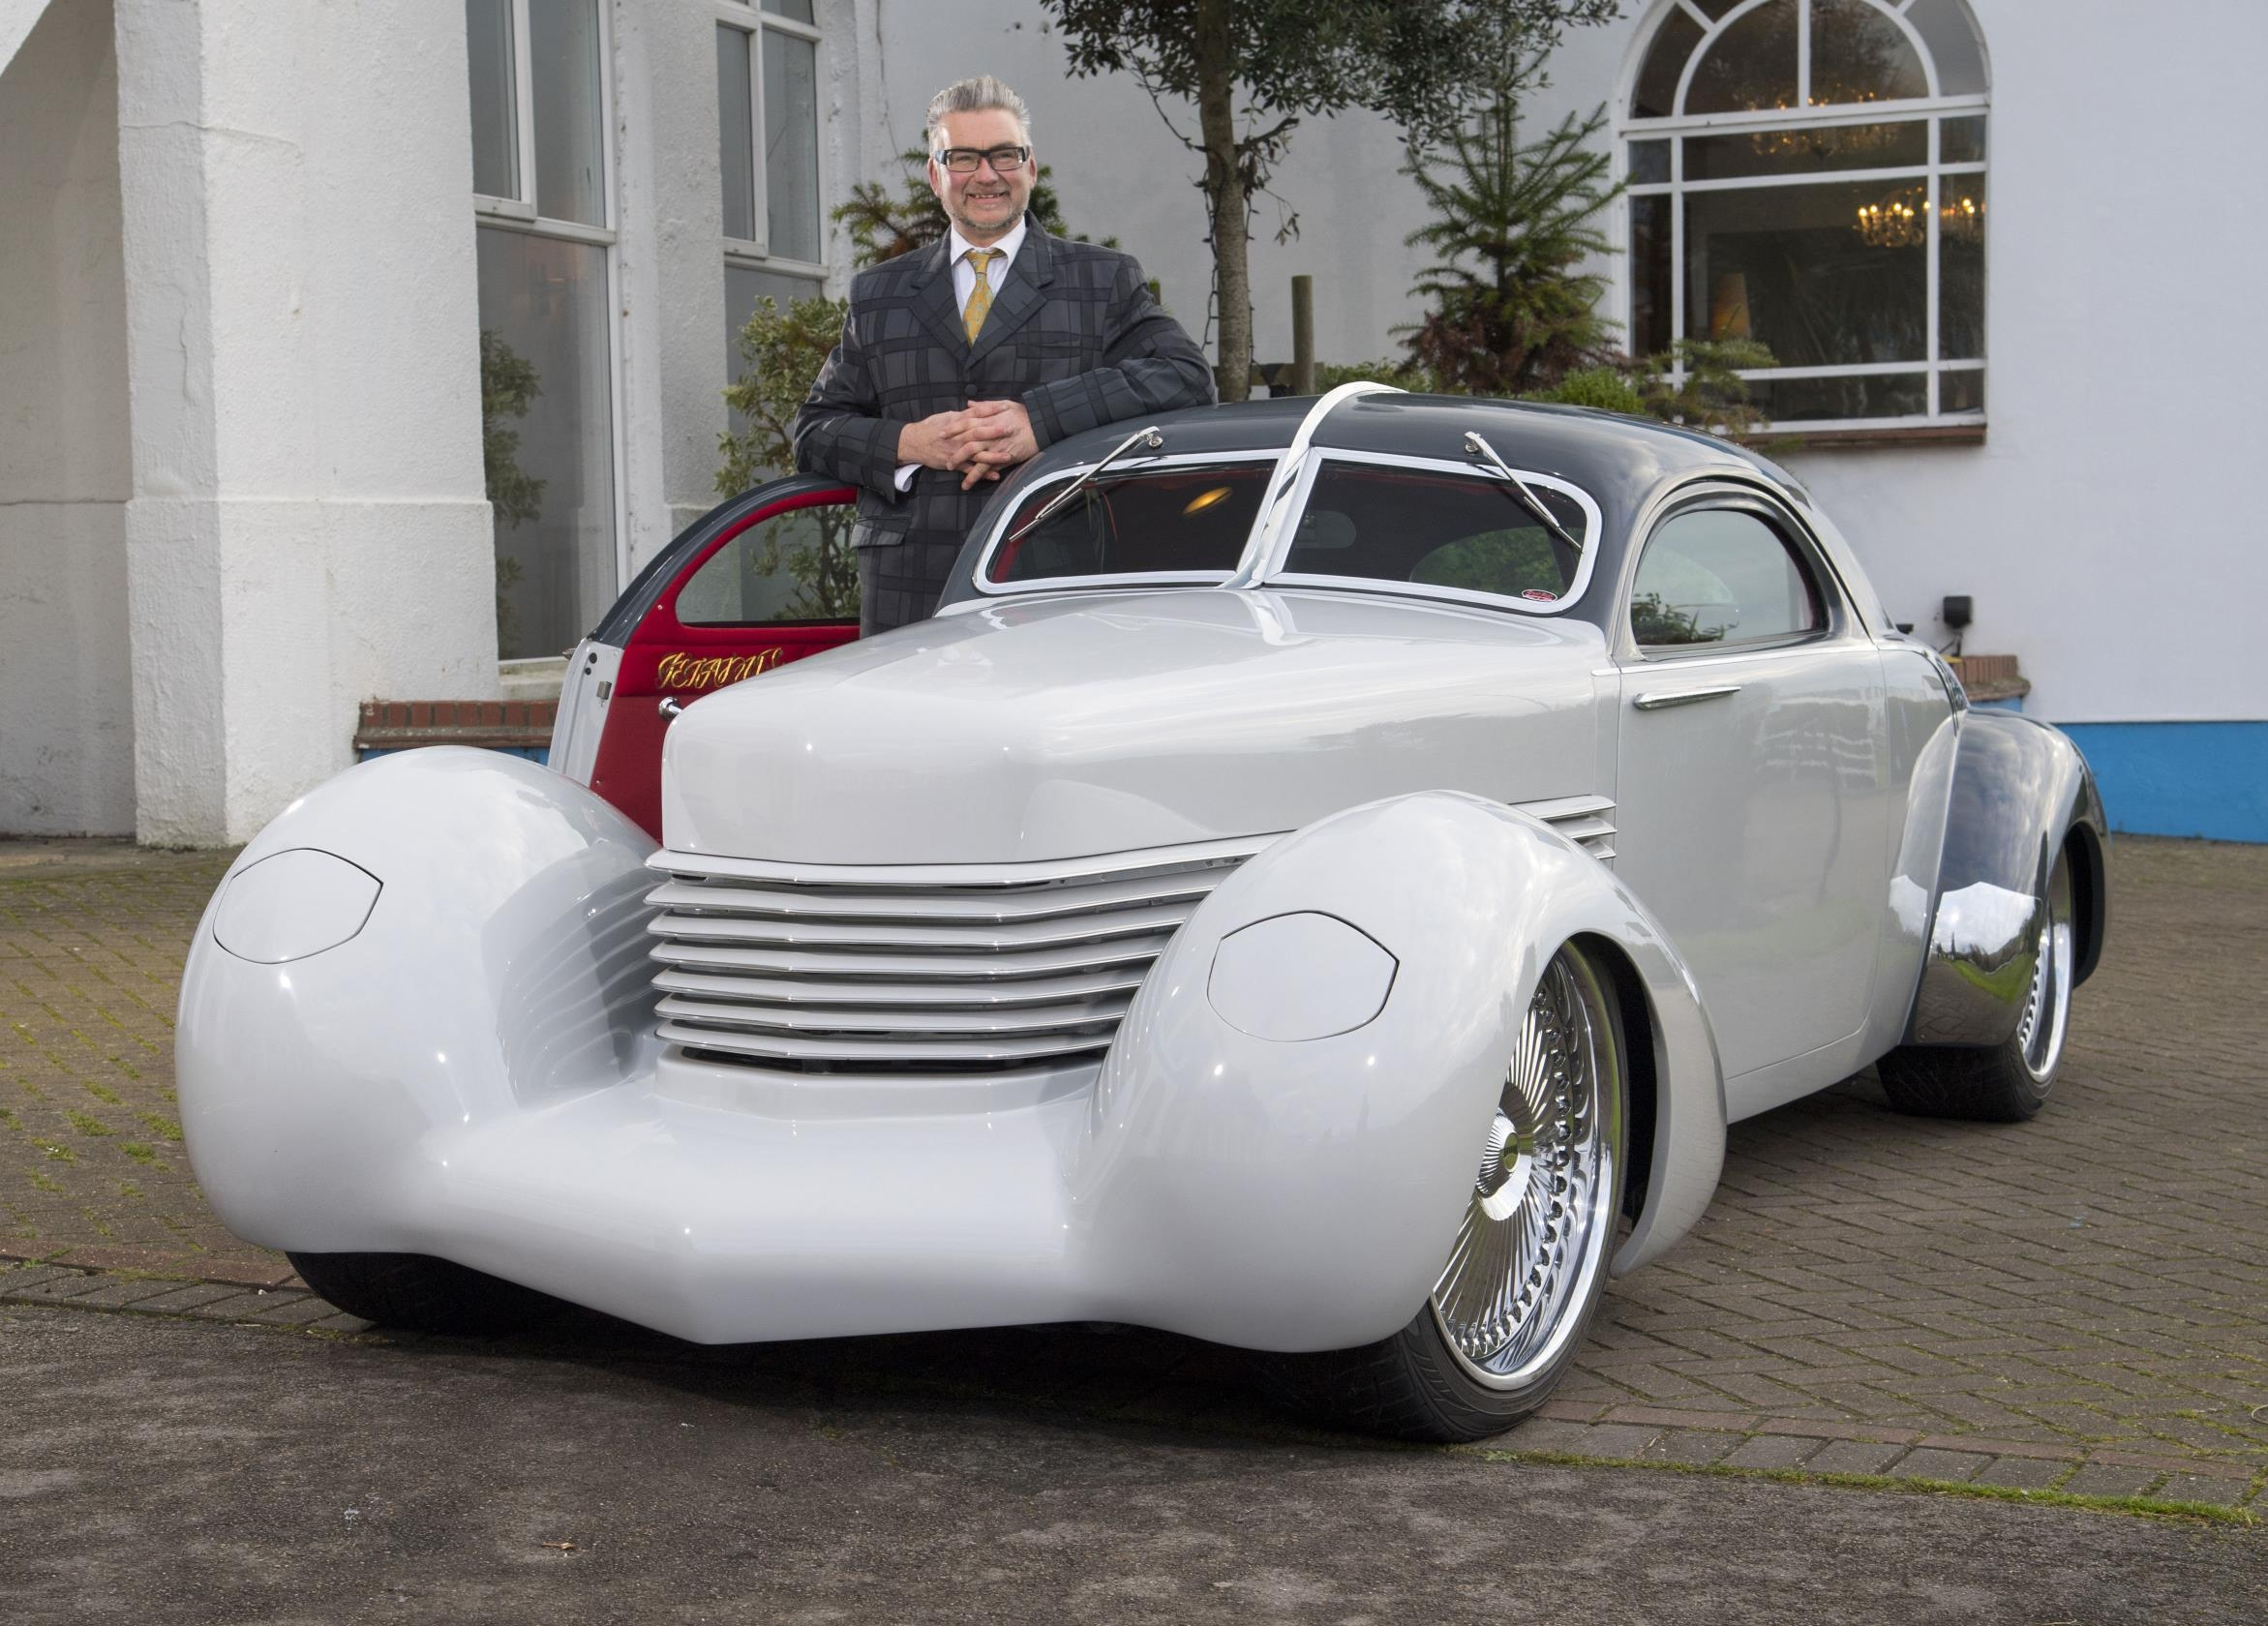 Andy Saunders' The Art of Kustom opens at Beaulieu